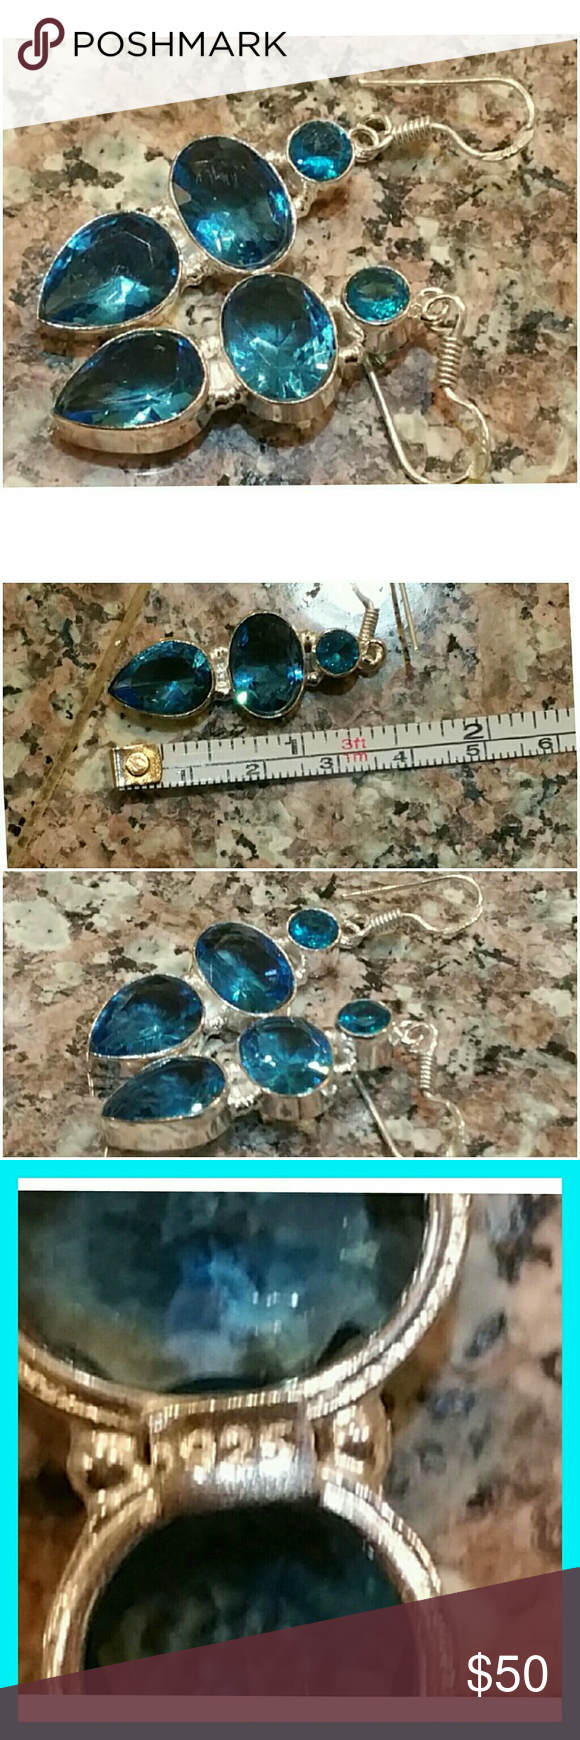 "Genuine Blue Topaz Earrings 2"" Stunning! Set in 925 stamped Solid Sterling Silver. Please see all pictures for details. Brand New. Never Worn. Wholesale Price. Msrp 310.00 Jewelry Earrings"